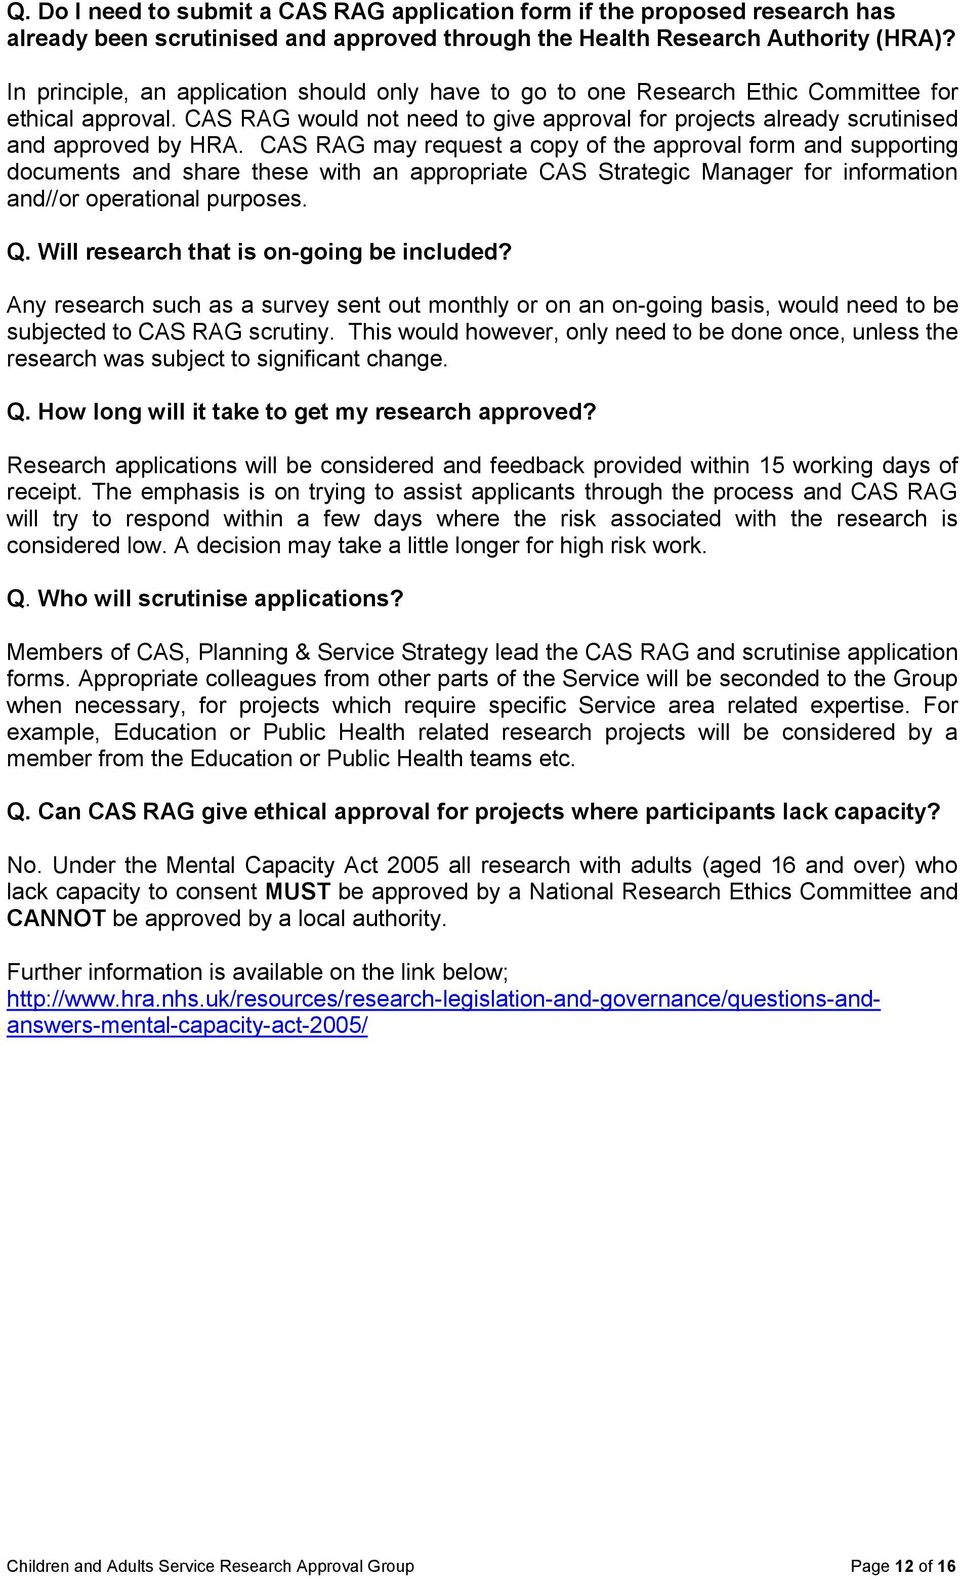 CAS RAG may request a copy of the approval form and supporting documents and share these with an appropriate CAS Strategic Manager for information and//or operational purposes. Q.